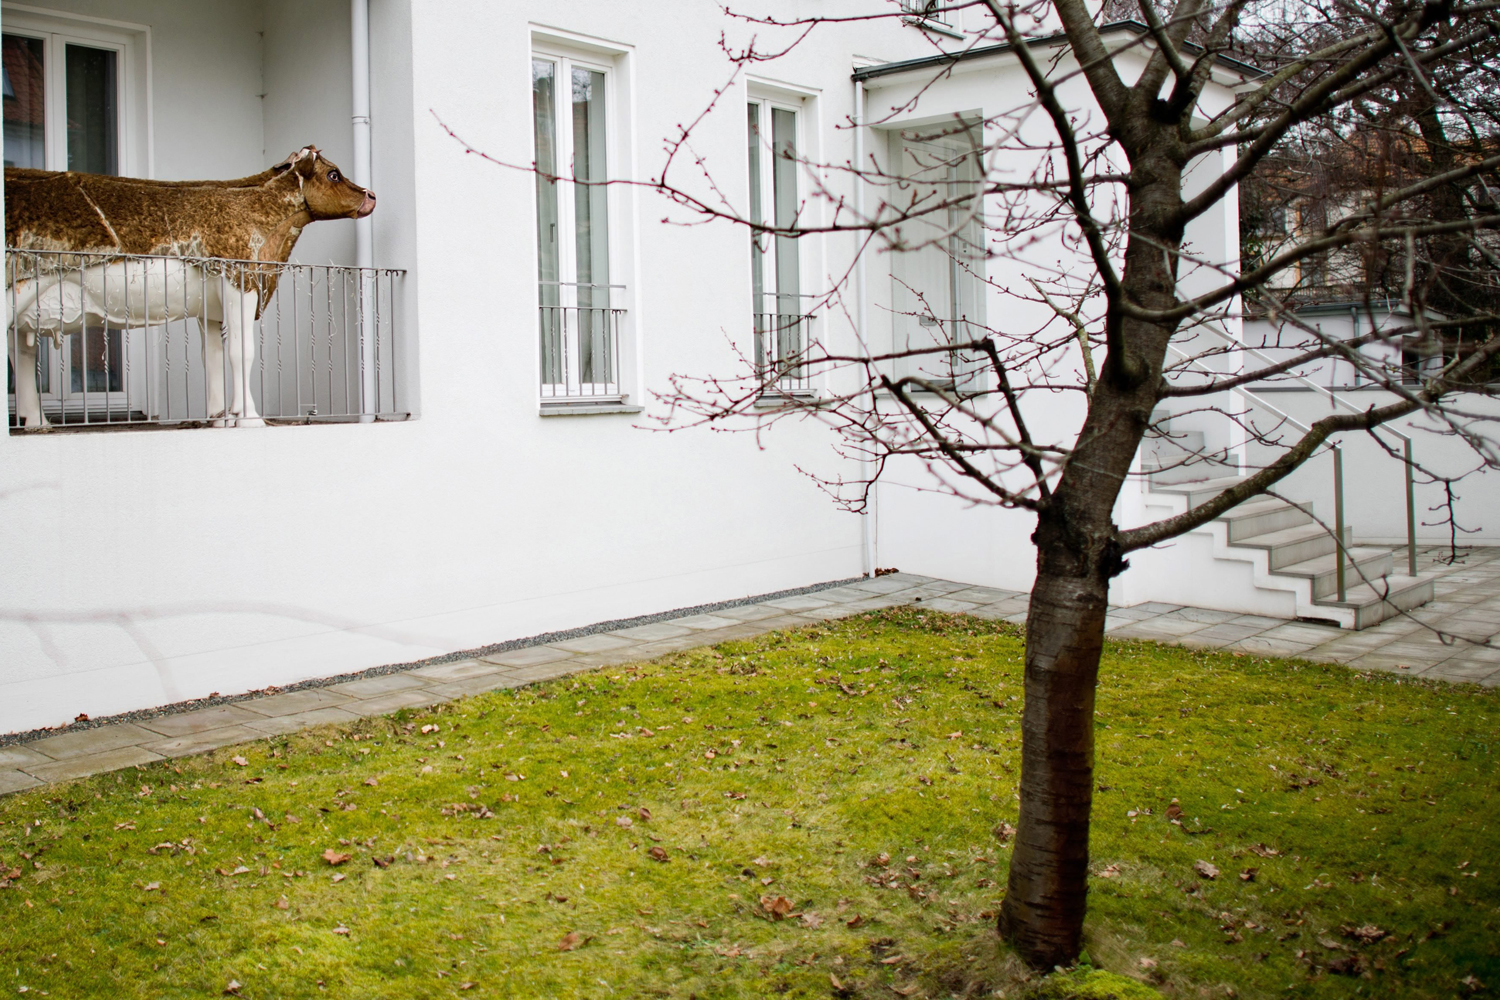 A statue of a cow stands on a balcony of a private home in Hanover, Germany, Feb. 18 2014. The piece of art was put on the balcony on purpose, because the inhabitants thought it would encumber the mowing of the lawn.